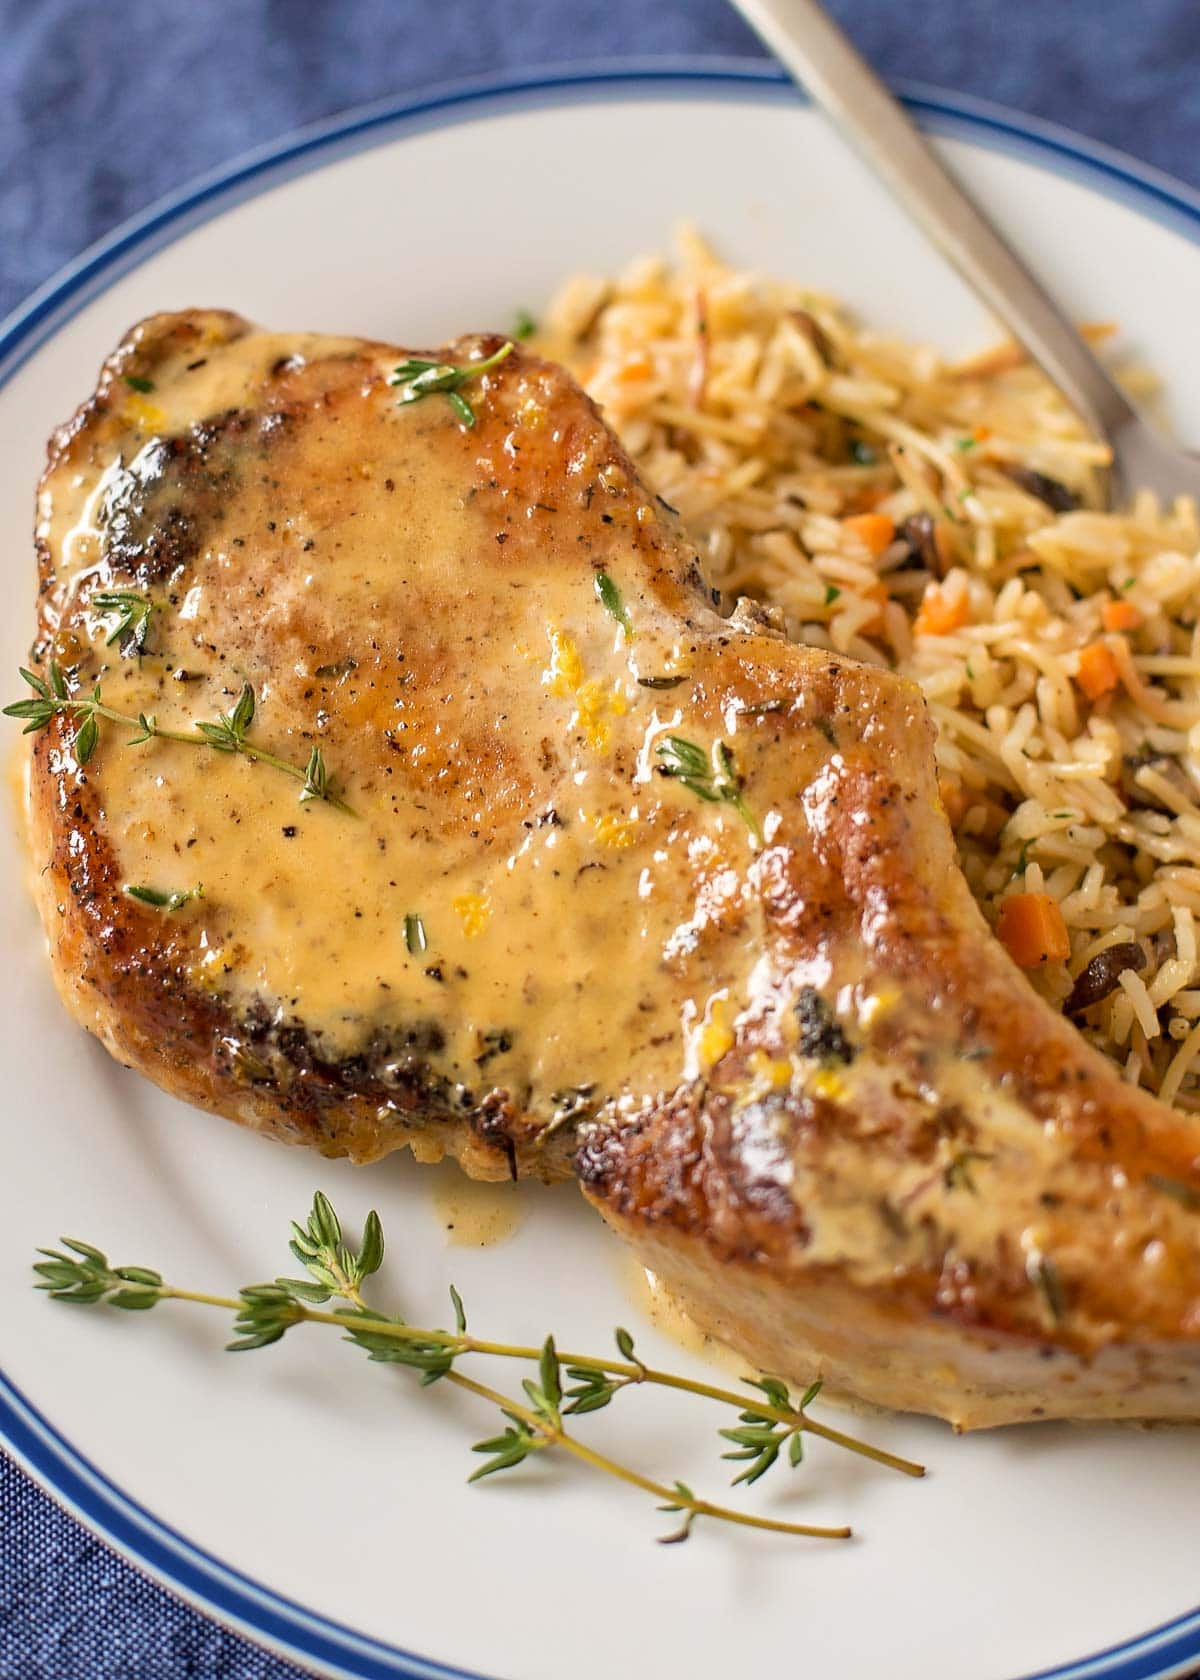 A smothered pork chop on a plate with rice